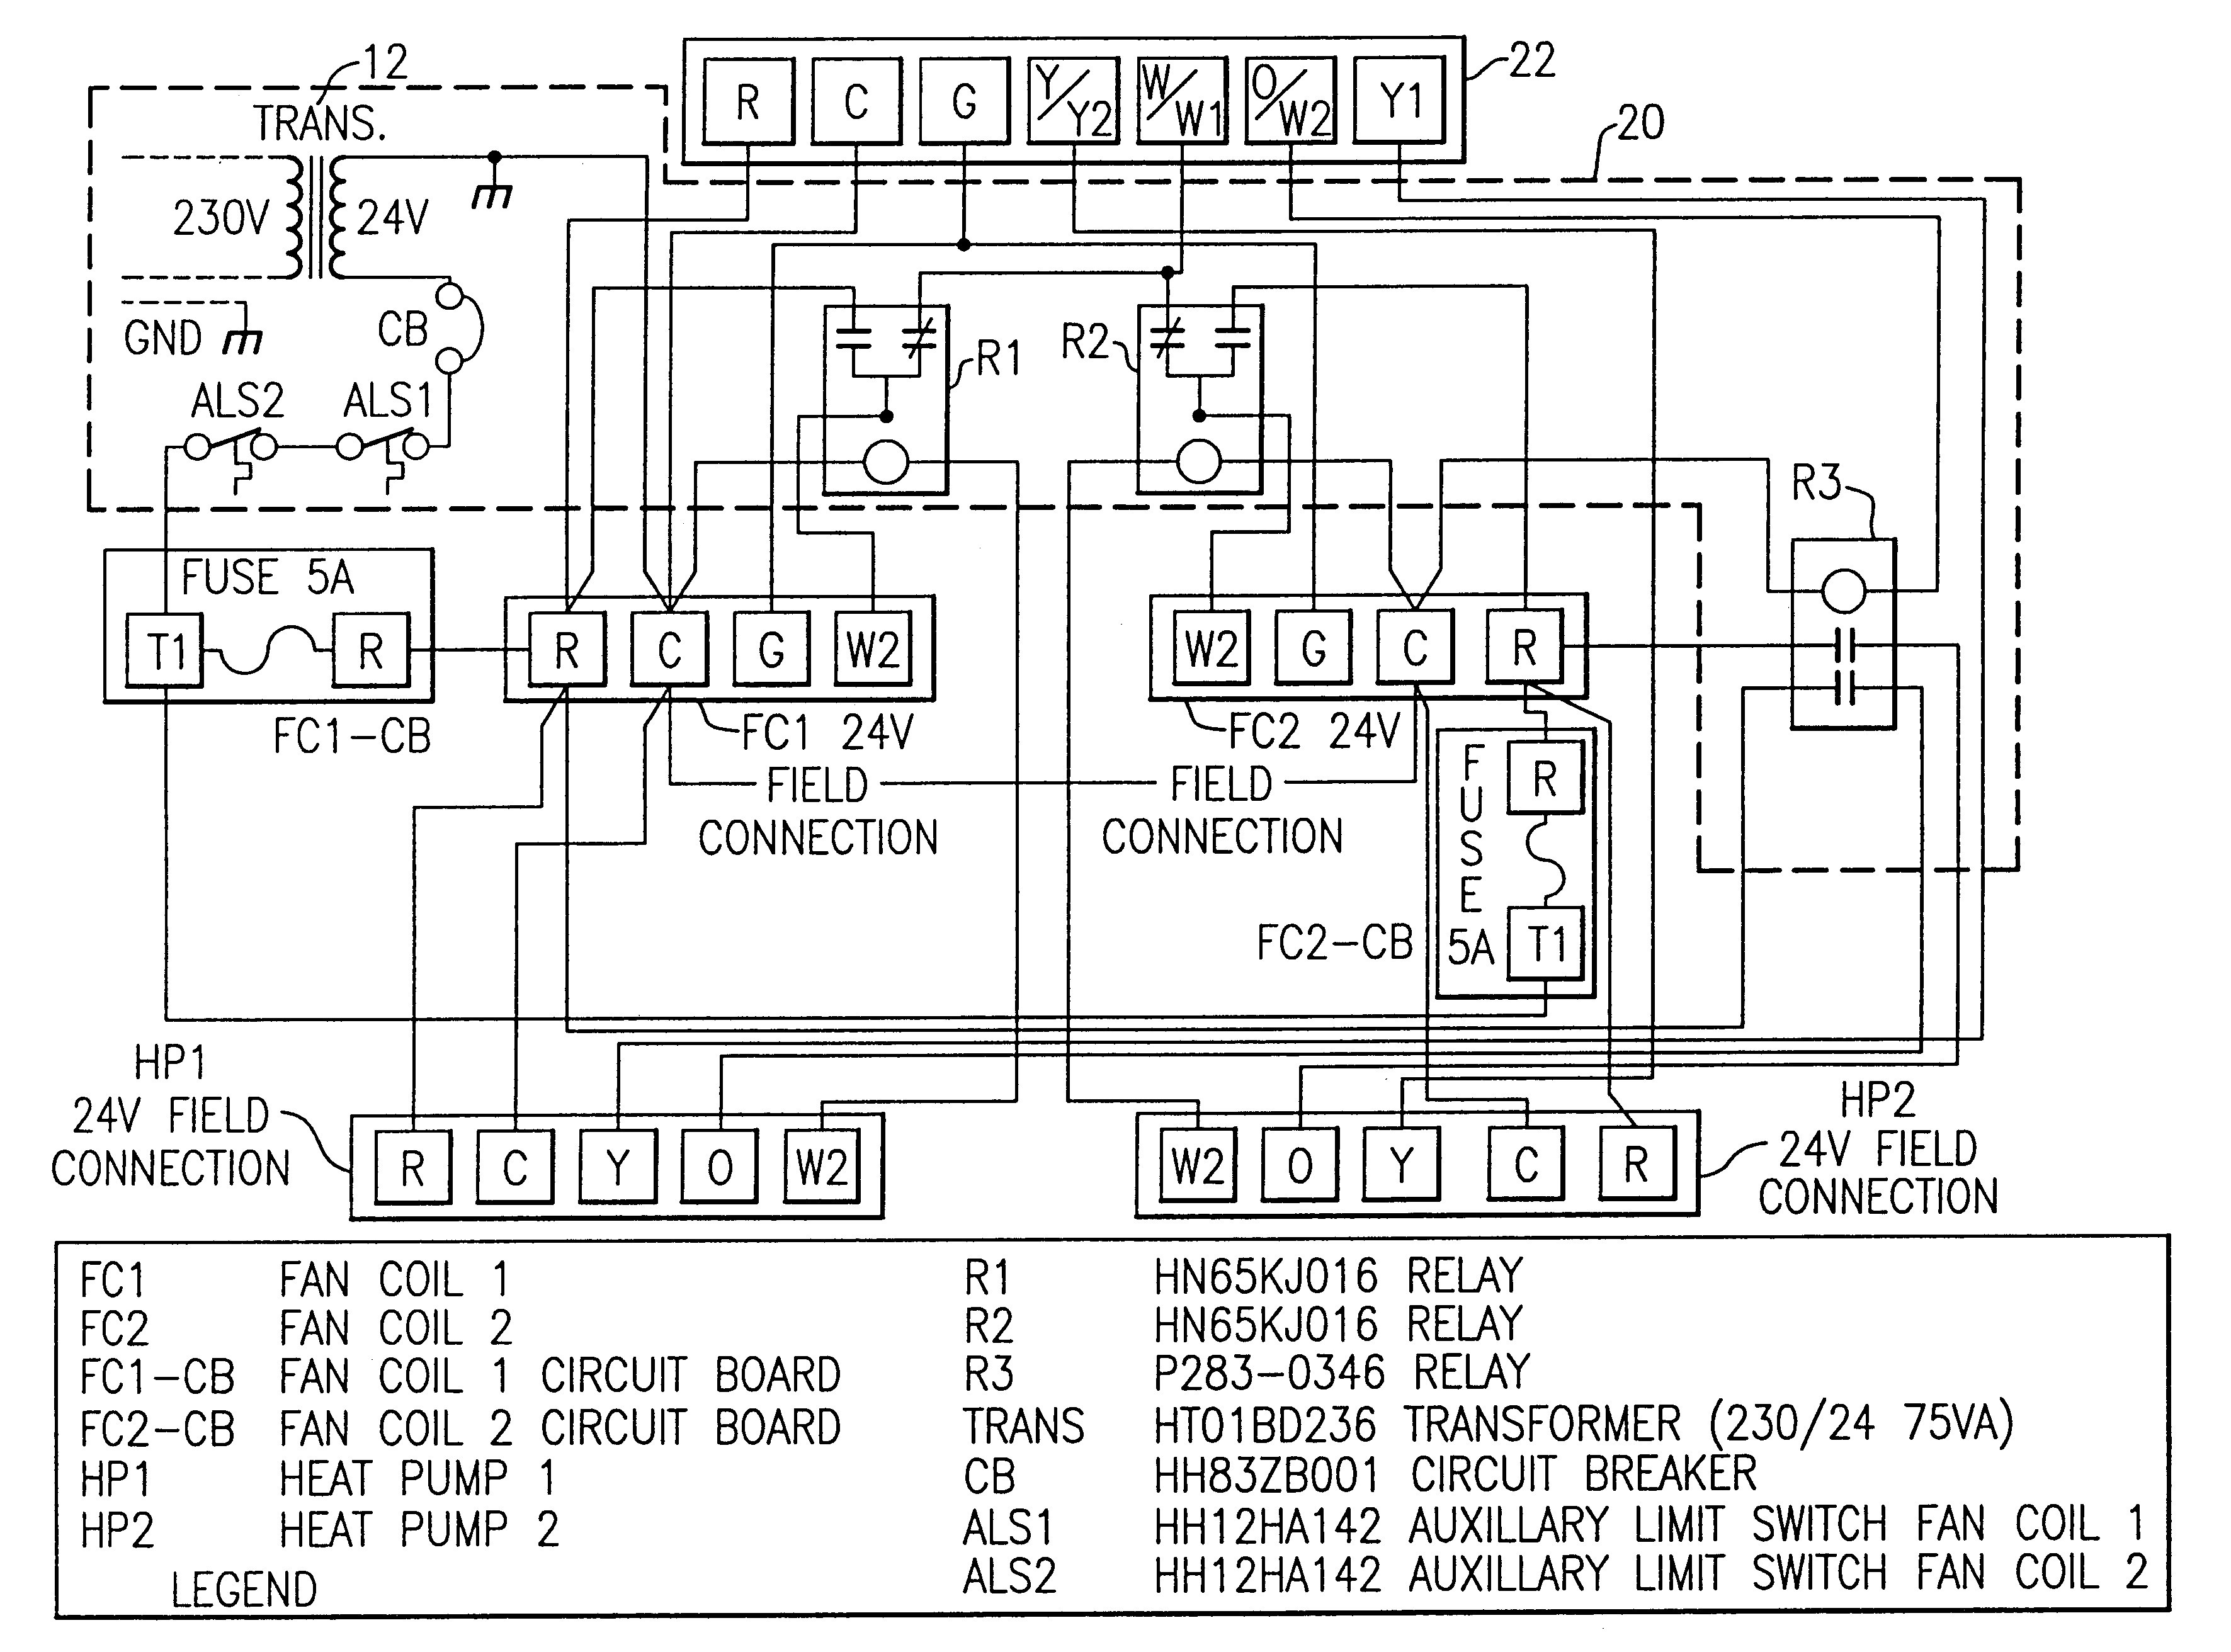 daisy chain wiring diagram elecrtic heater